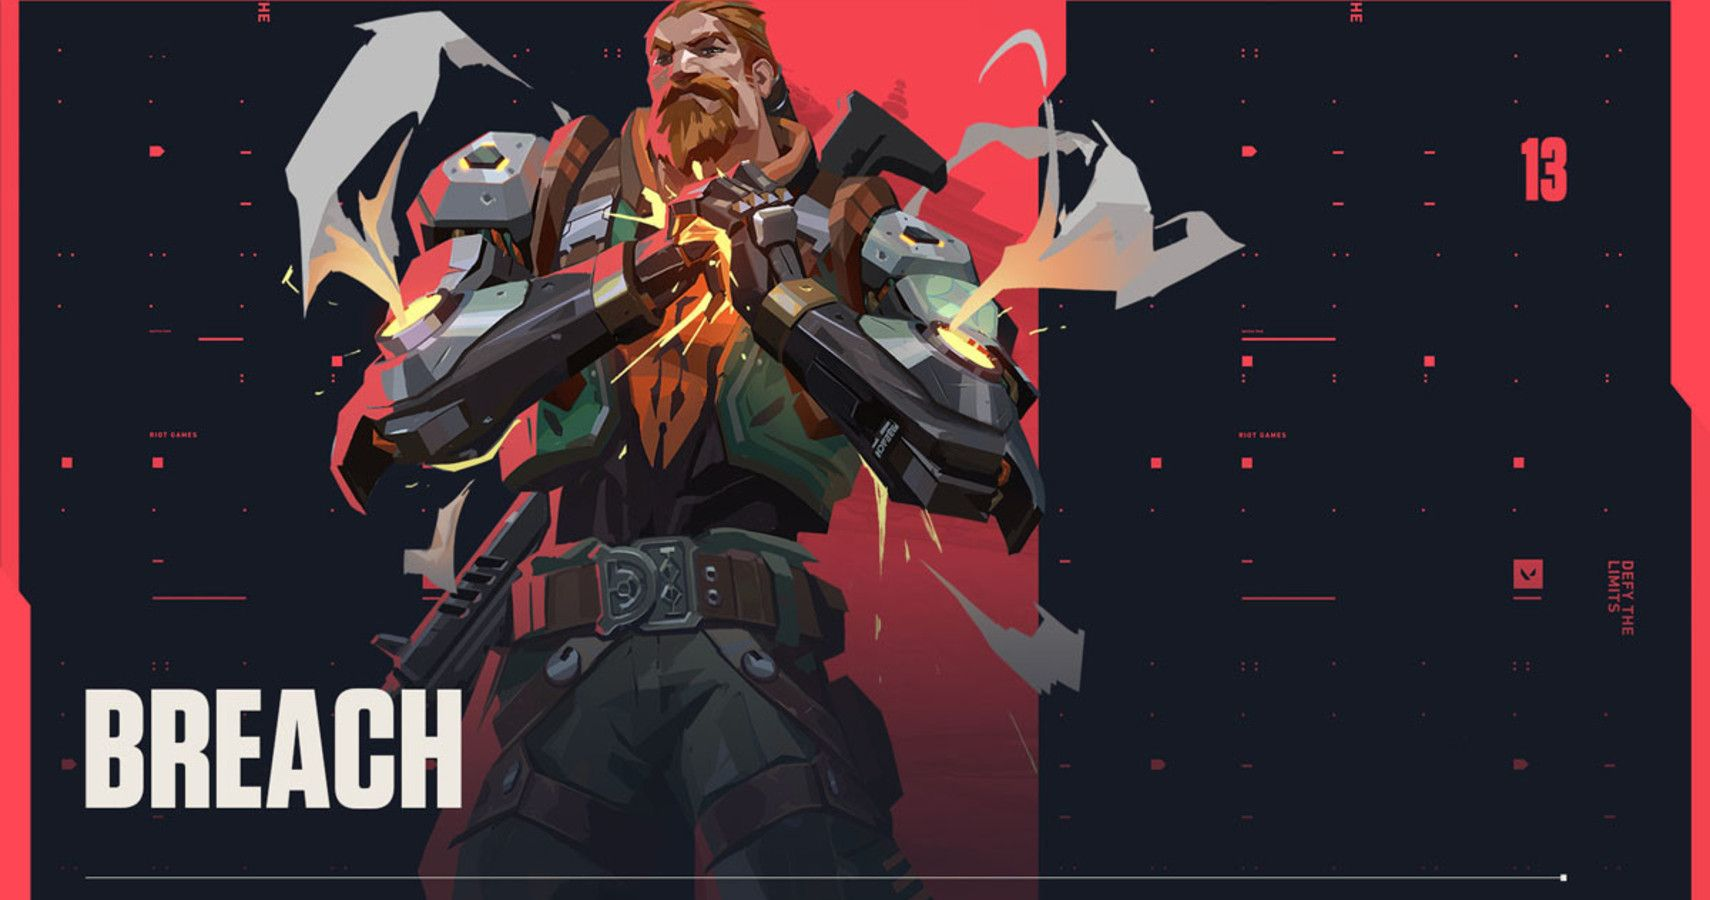 VALORANT Patch 1.11 Goes Live Again With More Breach Updates